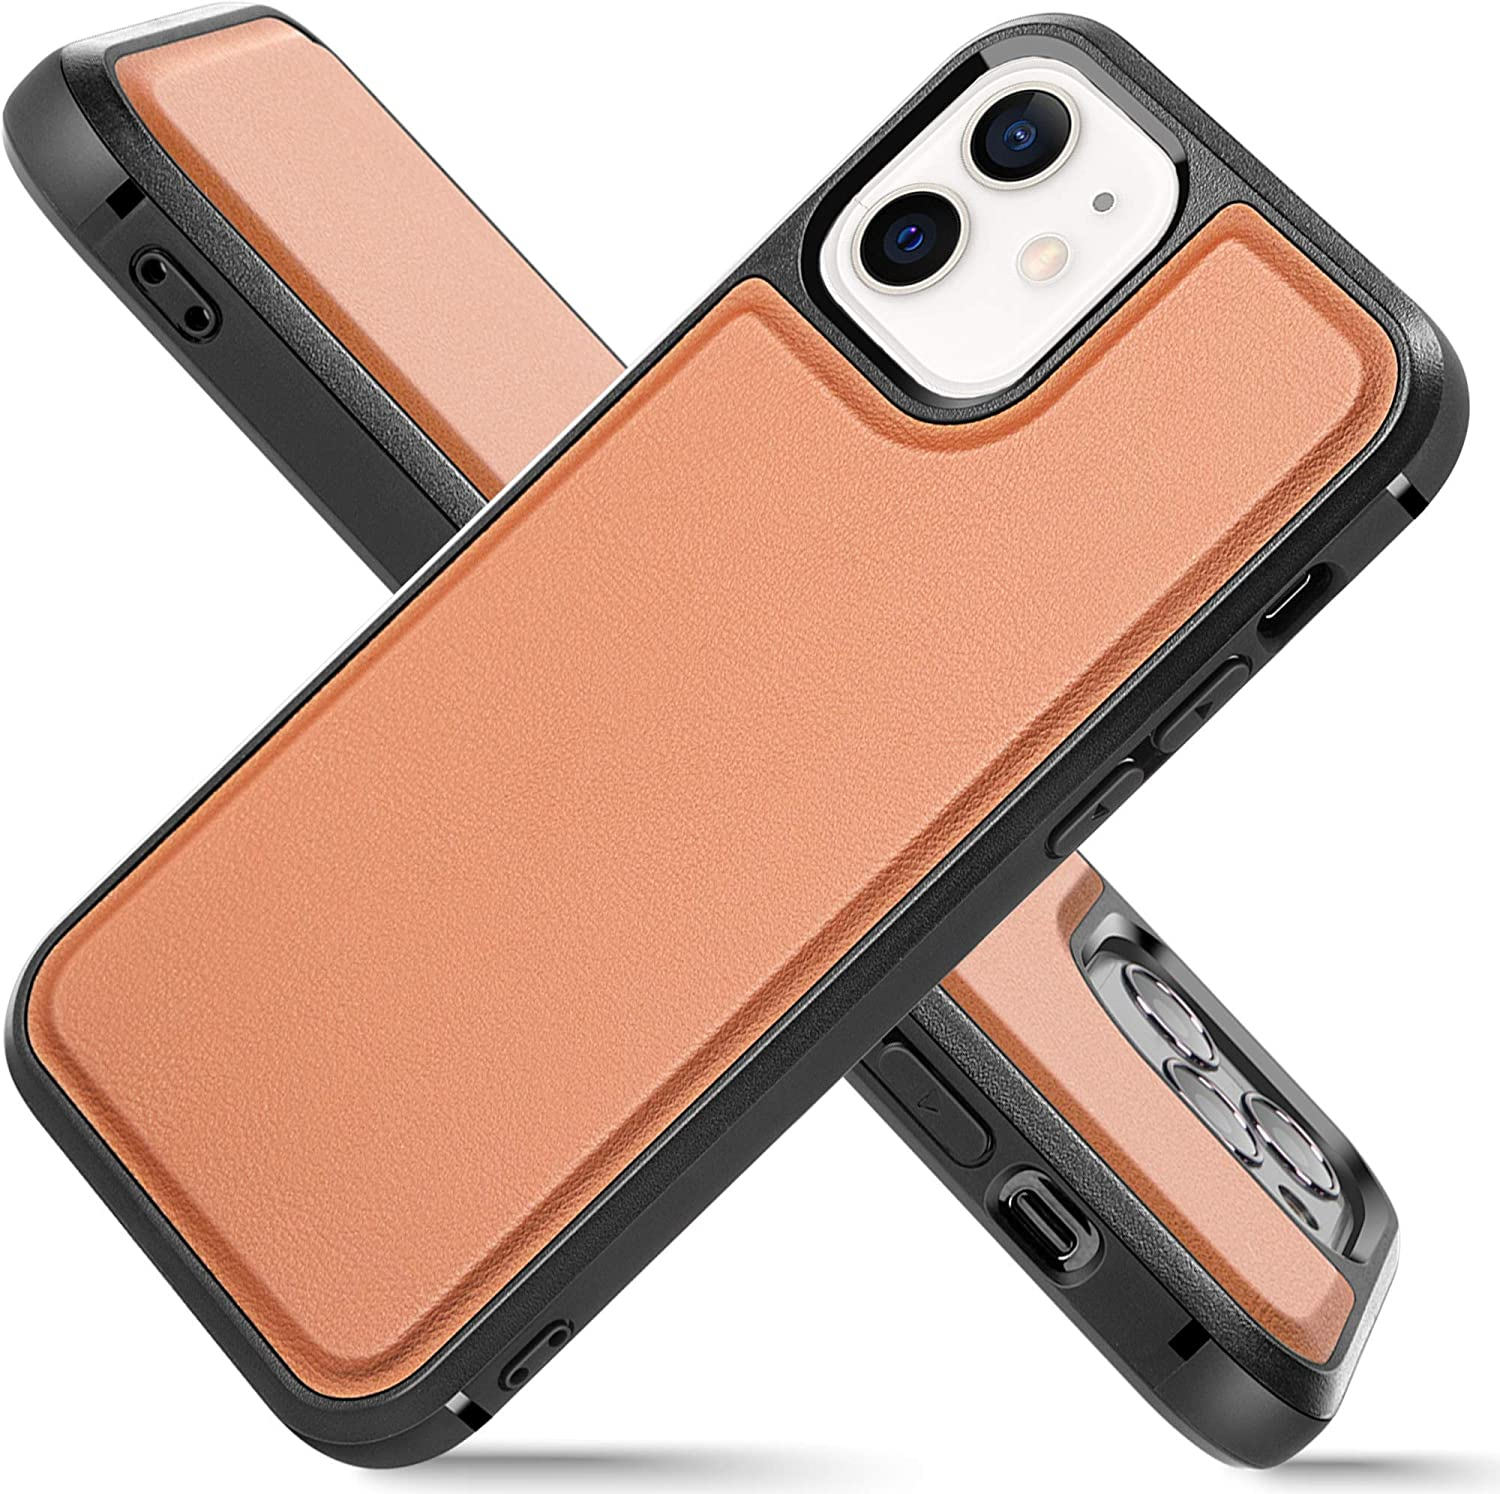 LONLI Basic Series | Shockproof Vegan Leather Case | Edge-to-Edge Protection for iPhone 12 Mini (5.4-inch, Caramel)